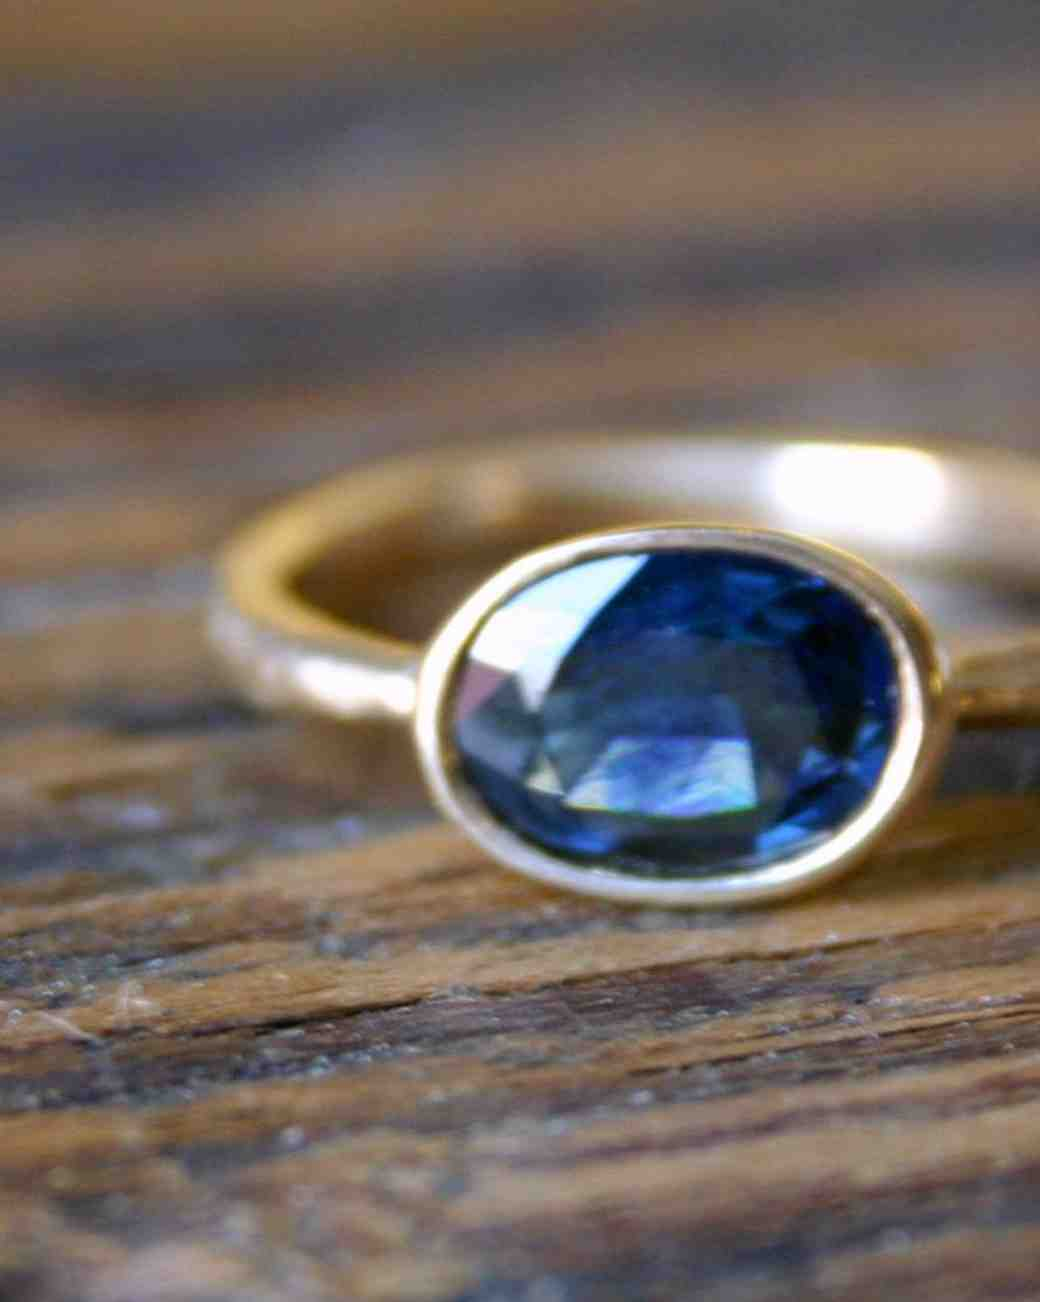 3 Questions for California Jewelry Designer Kate Ellen on the Latest Engagement Ring Trends